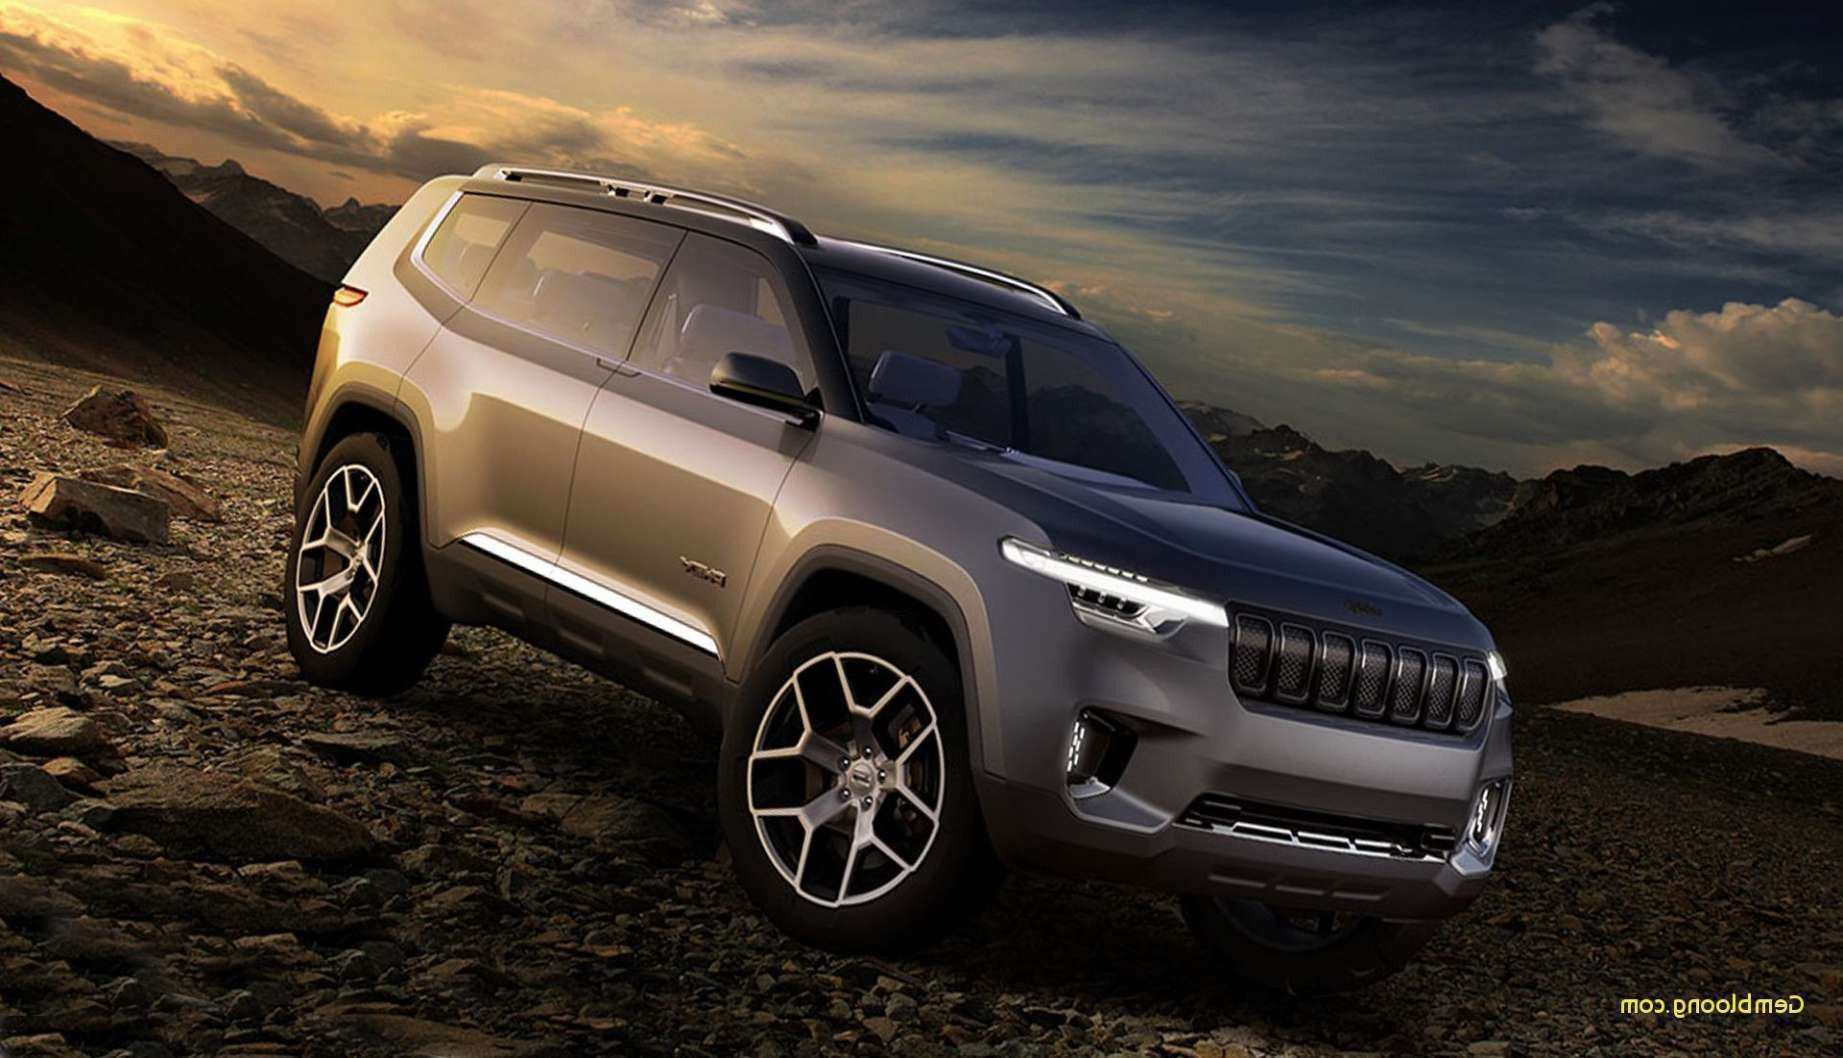 55 Best Jeep Nuova Grand Cherokee 2020 Concept